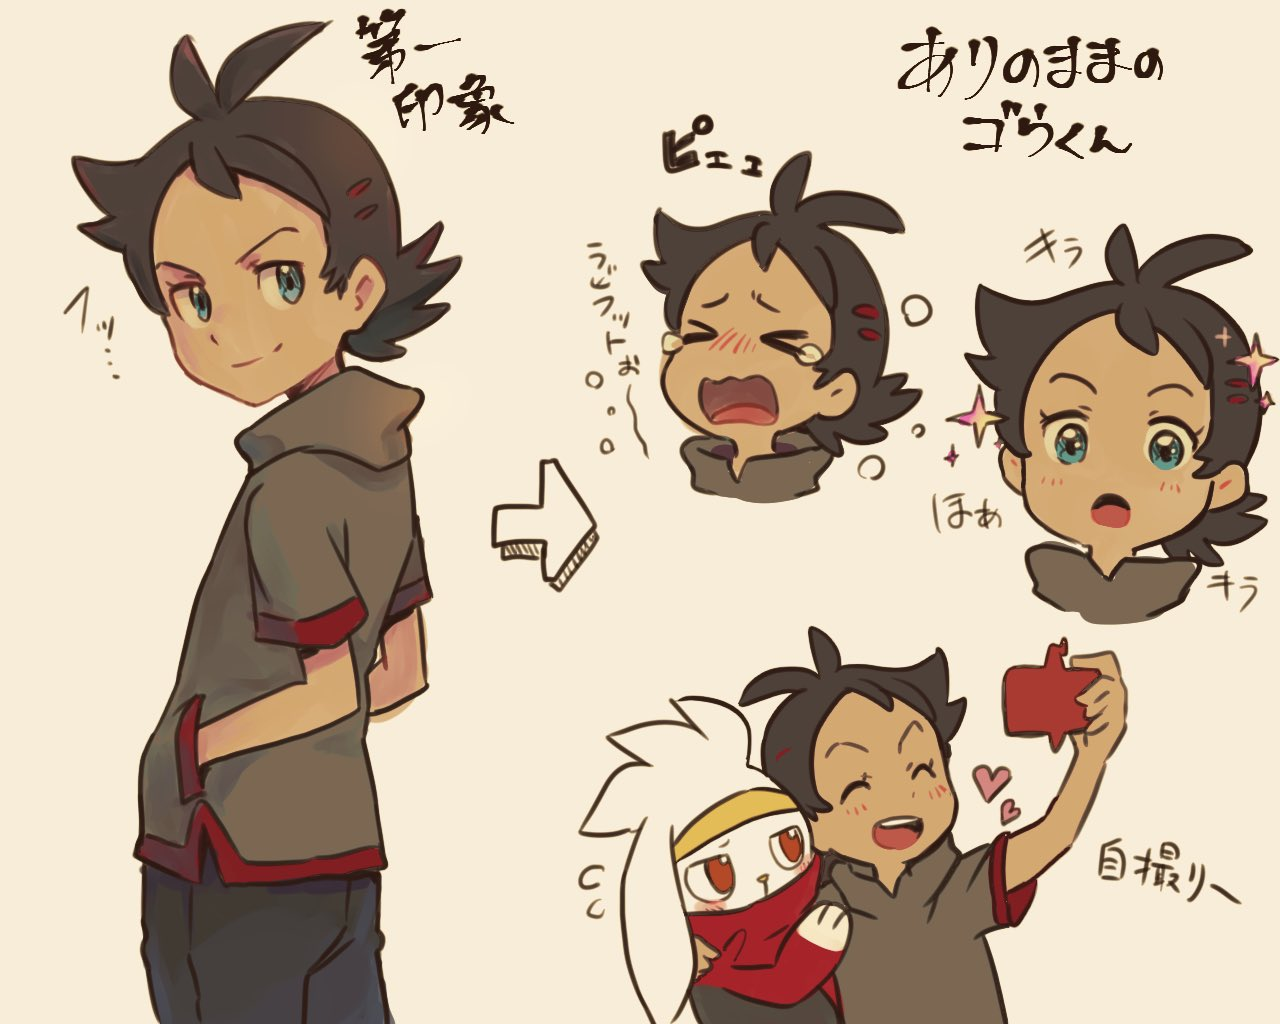 >_< 1boy antenna_hair arm_up arrow_(symbol) black_pants blue_eyes blush closed_eyes closed_mouth commentary_request crying gen_4_pokemon gen_8_pokemon goh_(pokemon) hair_ornament hairclip hand_in_pocket holding looking_back multiple_views nose_blush open_mouth pants pokemon pokemon_(anime) pokemon_(creature) pokemon_swsh_(anime) raboot rechain rotom rotom_phone short_sleeves smile sparkle tears tongue translation_request